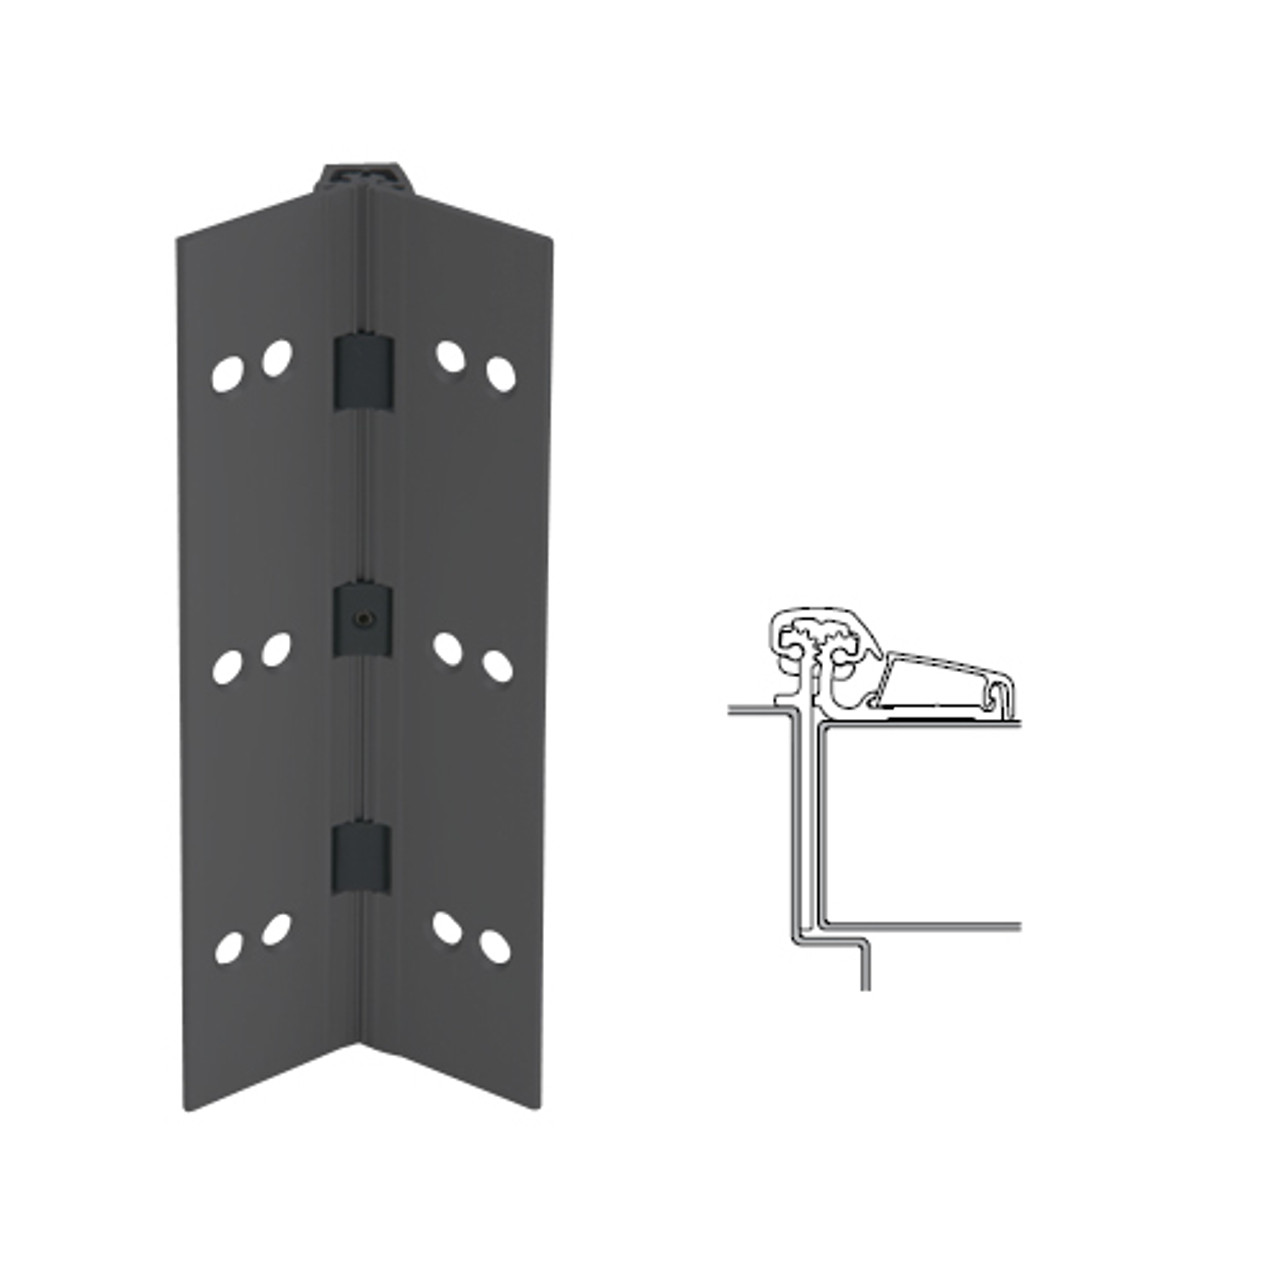 054XY-315AN-83-SECWDWD IVES Adjustable Half Surface Continuous Geared Hinges with Security Screws - Hex Pin Drive in Anodized Black